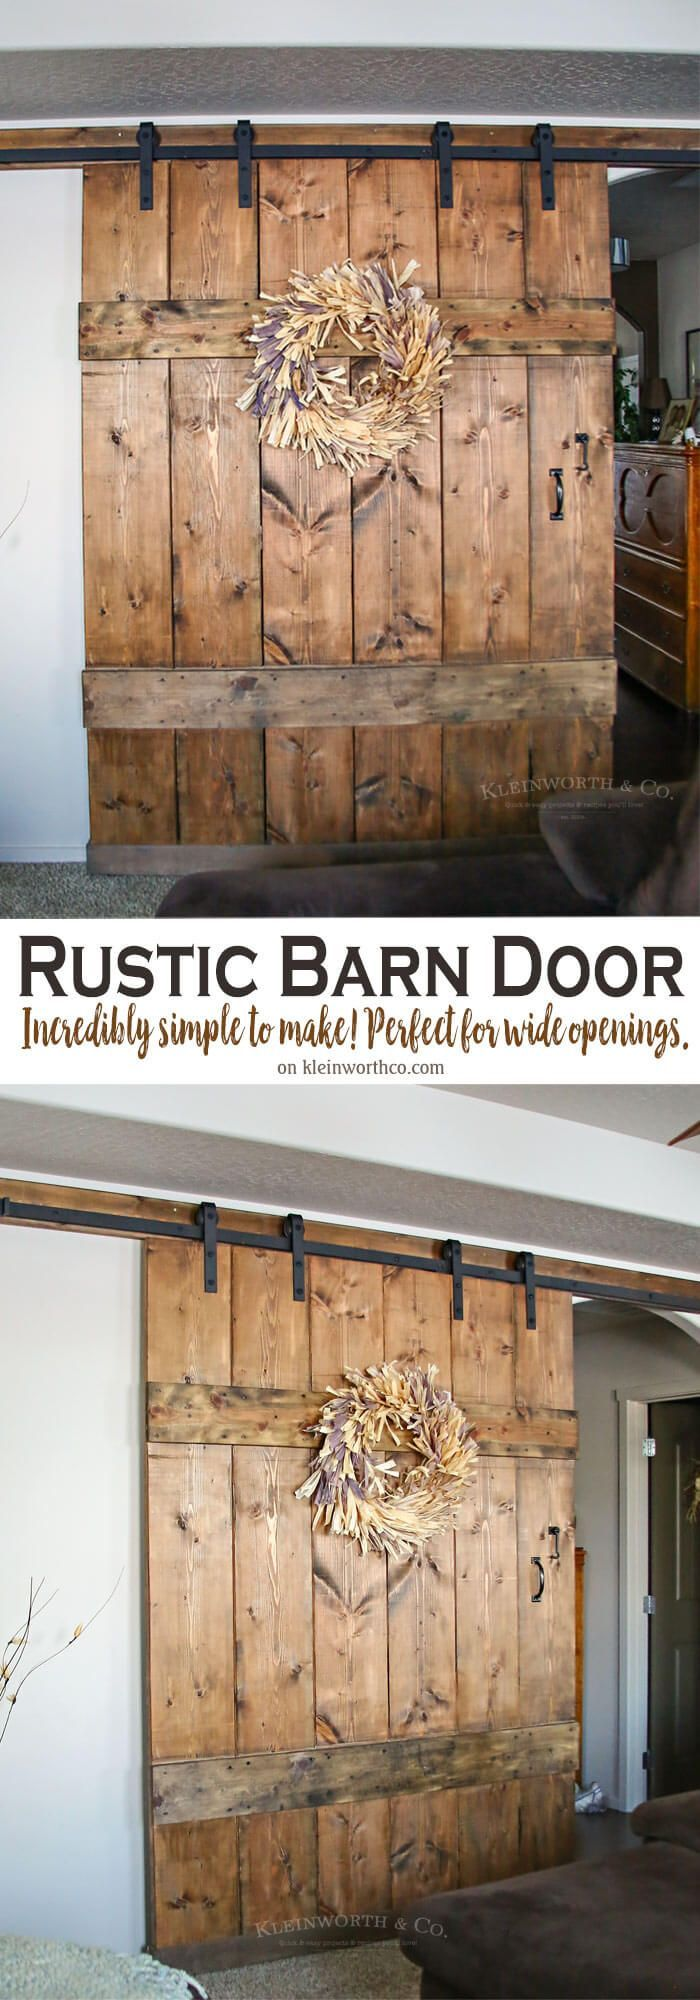 wide rustic barn door is 6 feet wide u0026 made for extra large doorways itu0027s